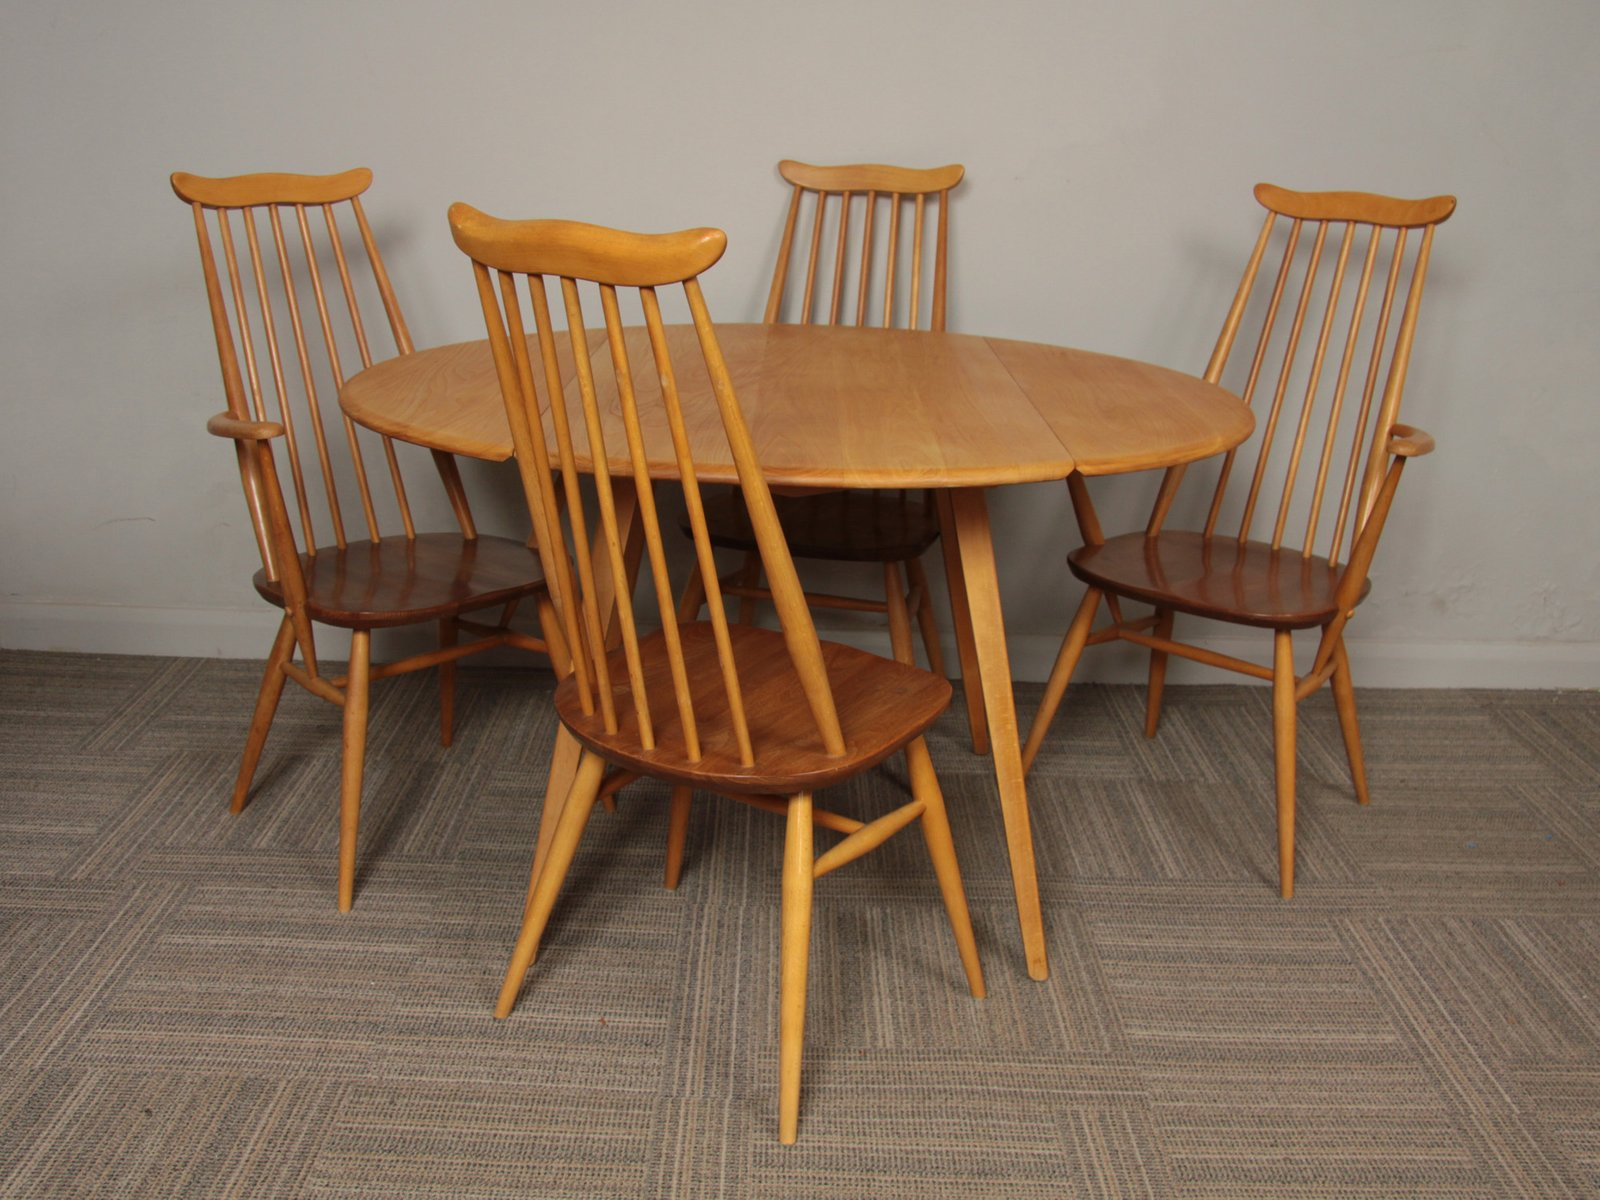 Beech Elm Oval Drop Leaf Dining Table From Ercol With 4 Chairs